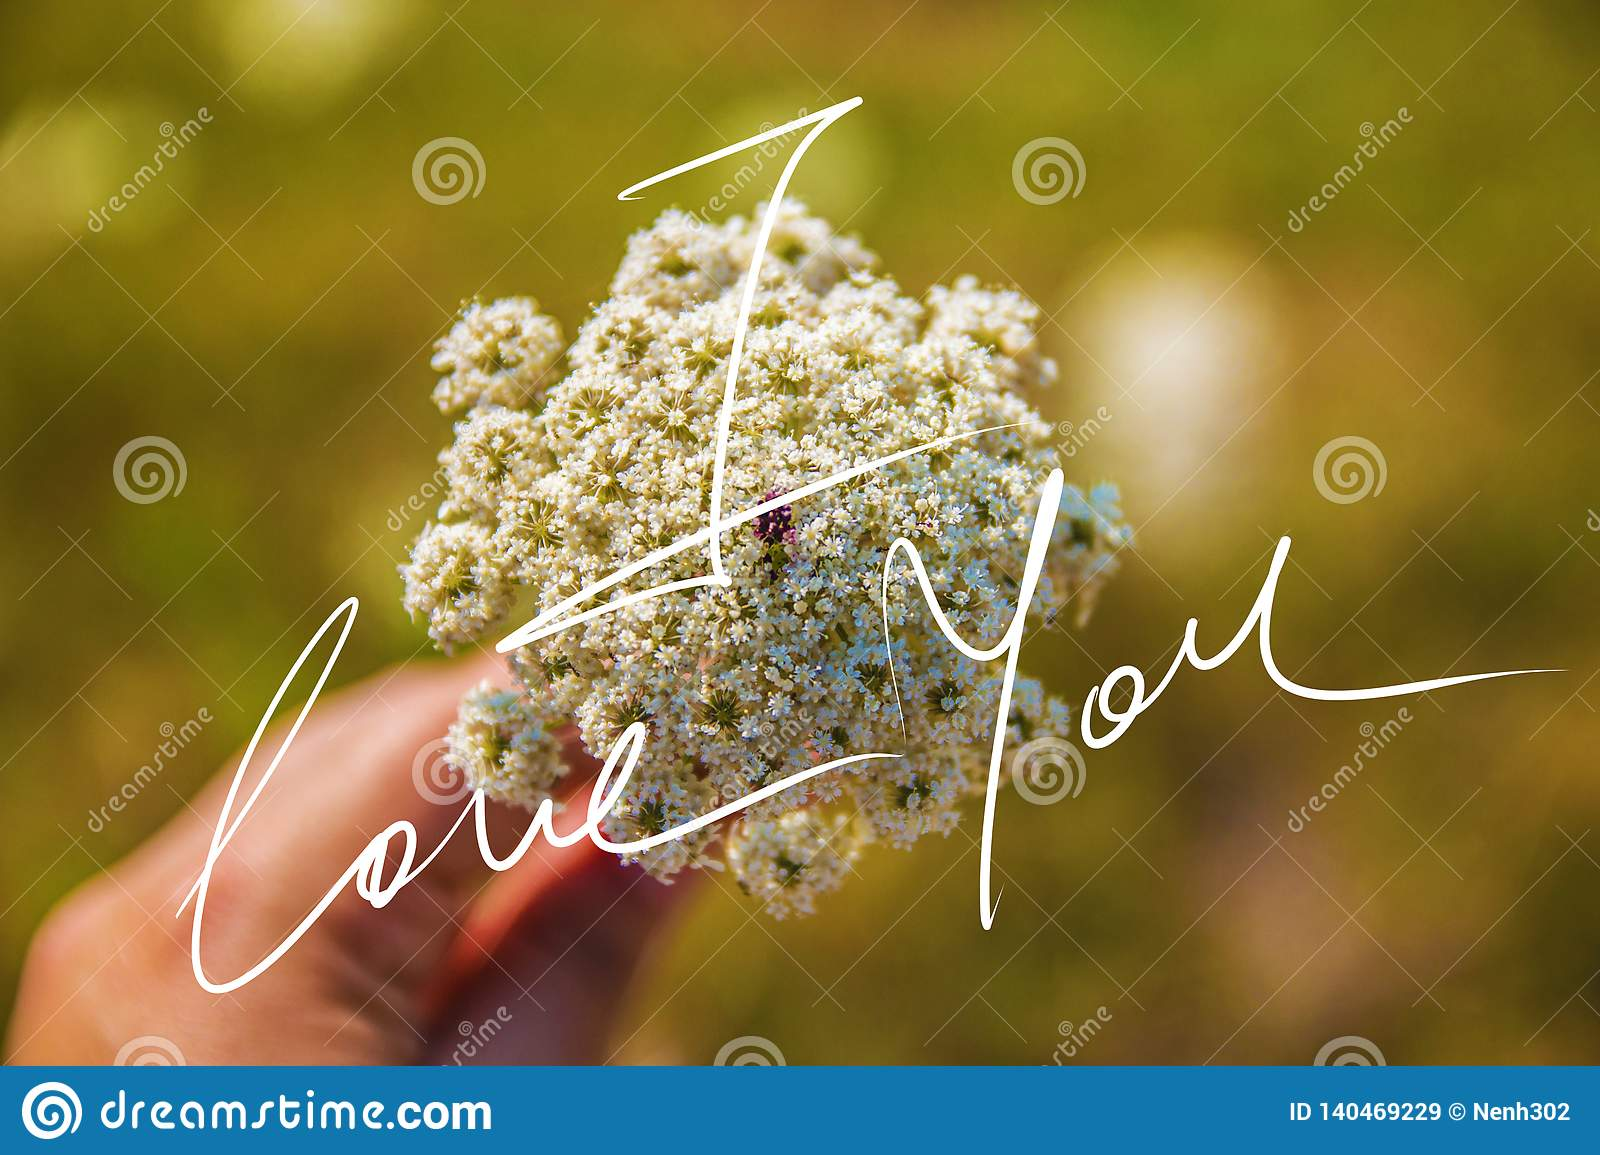 I Love You Handwriting Motto On A Photo Stock Image